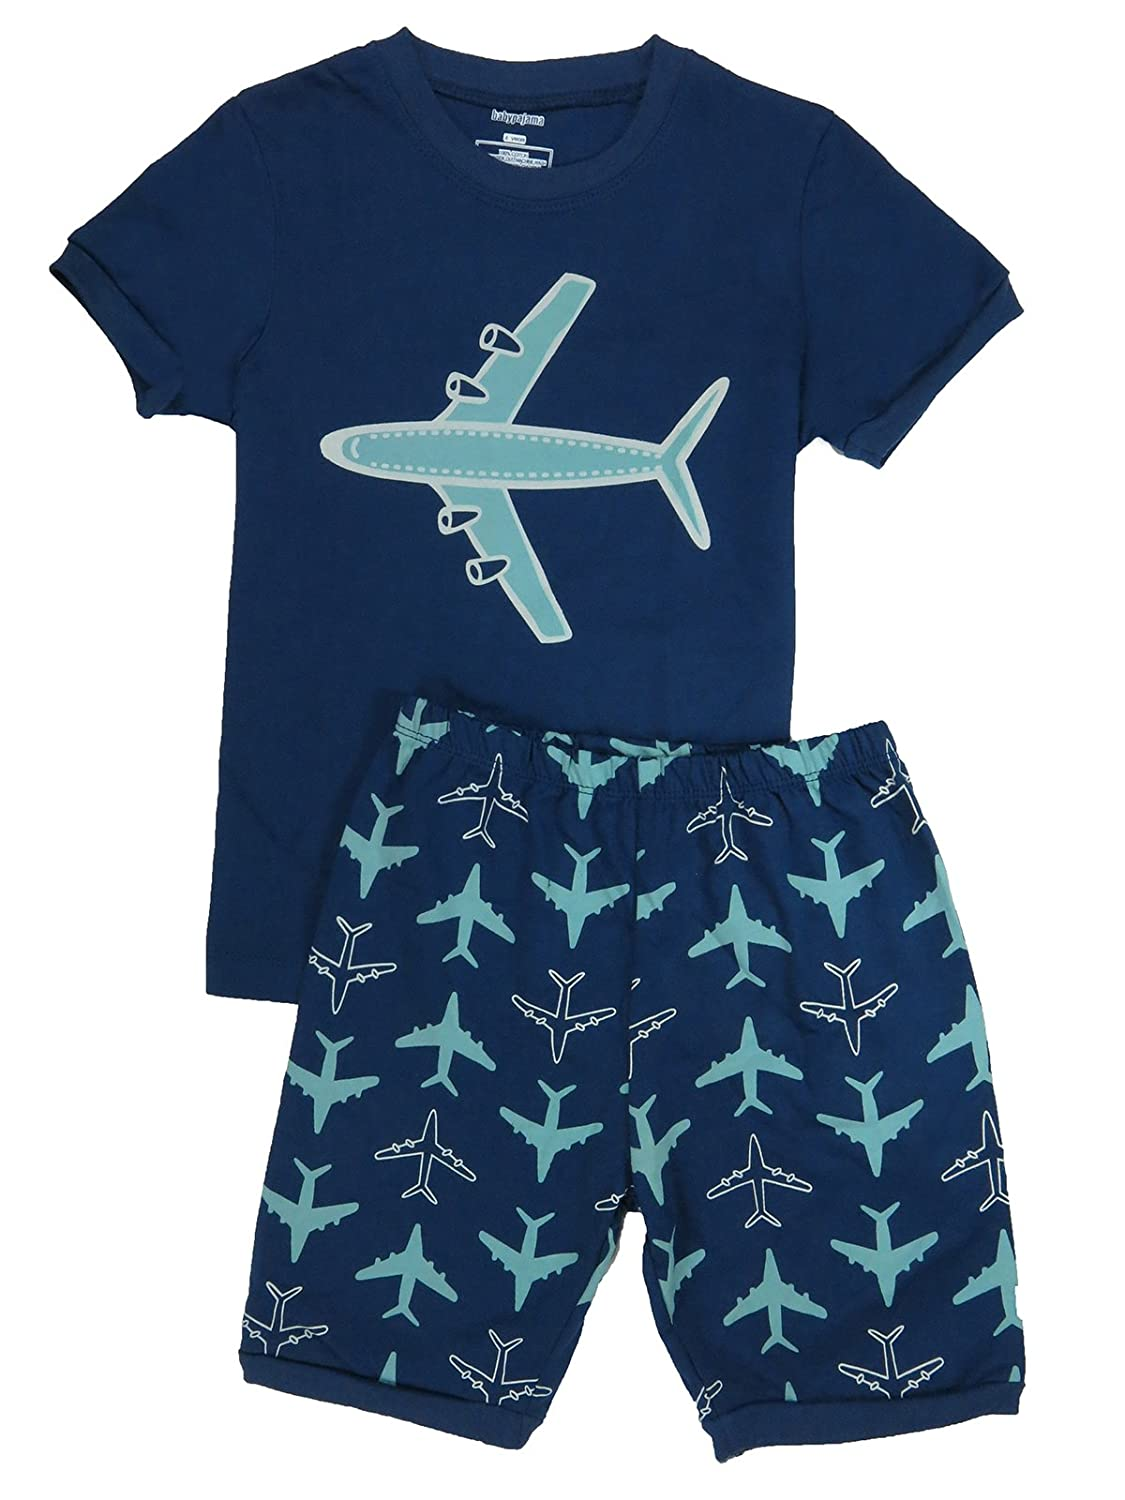 Babypajama 12 SHORTS ボーイズ 12 - 18 18 Months Blue/Blue2 Blue/Blue2 B071HB1XG3, キタウオヌマグン:fe6ac814 --- capela.eng.br